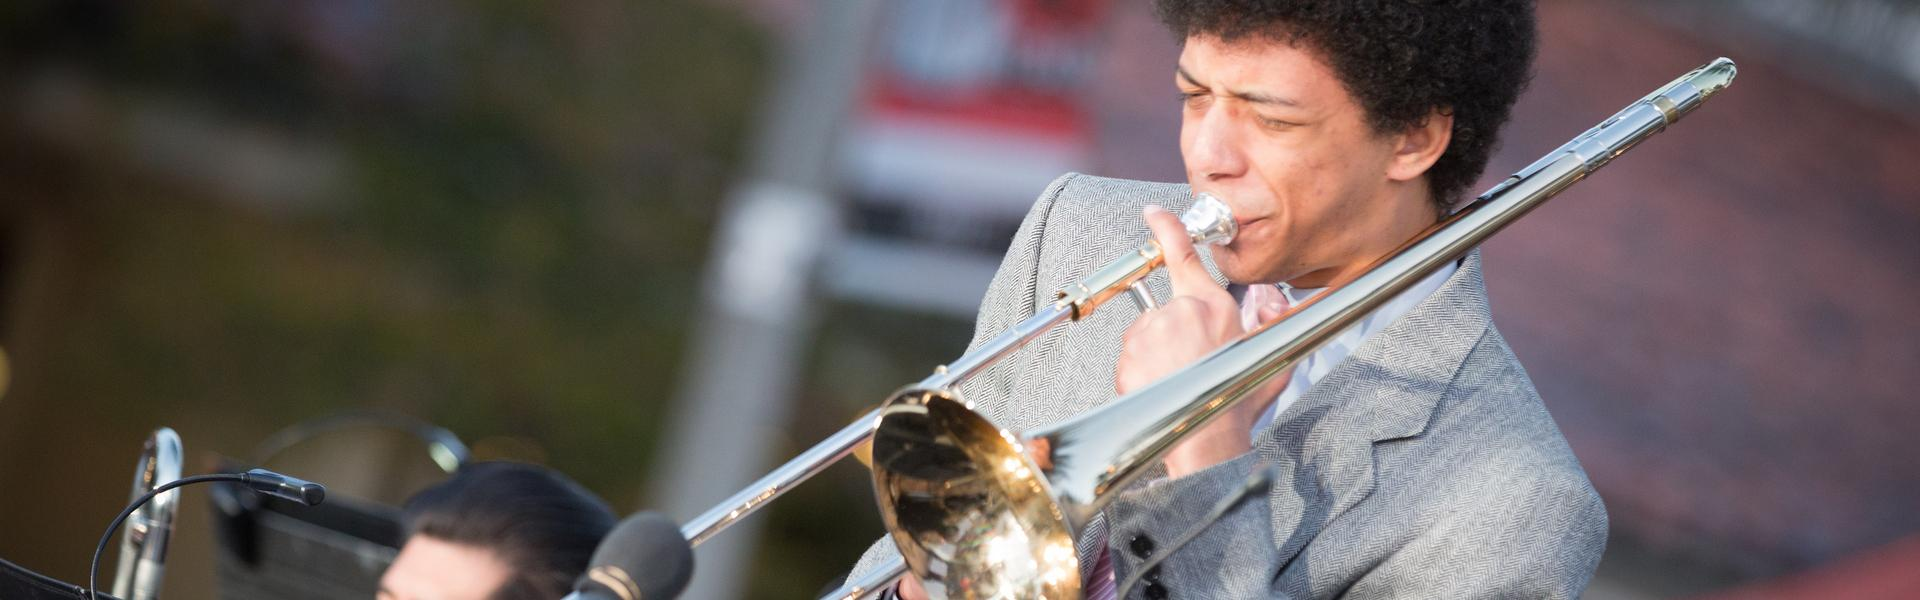 A musician playing the trombone.